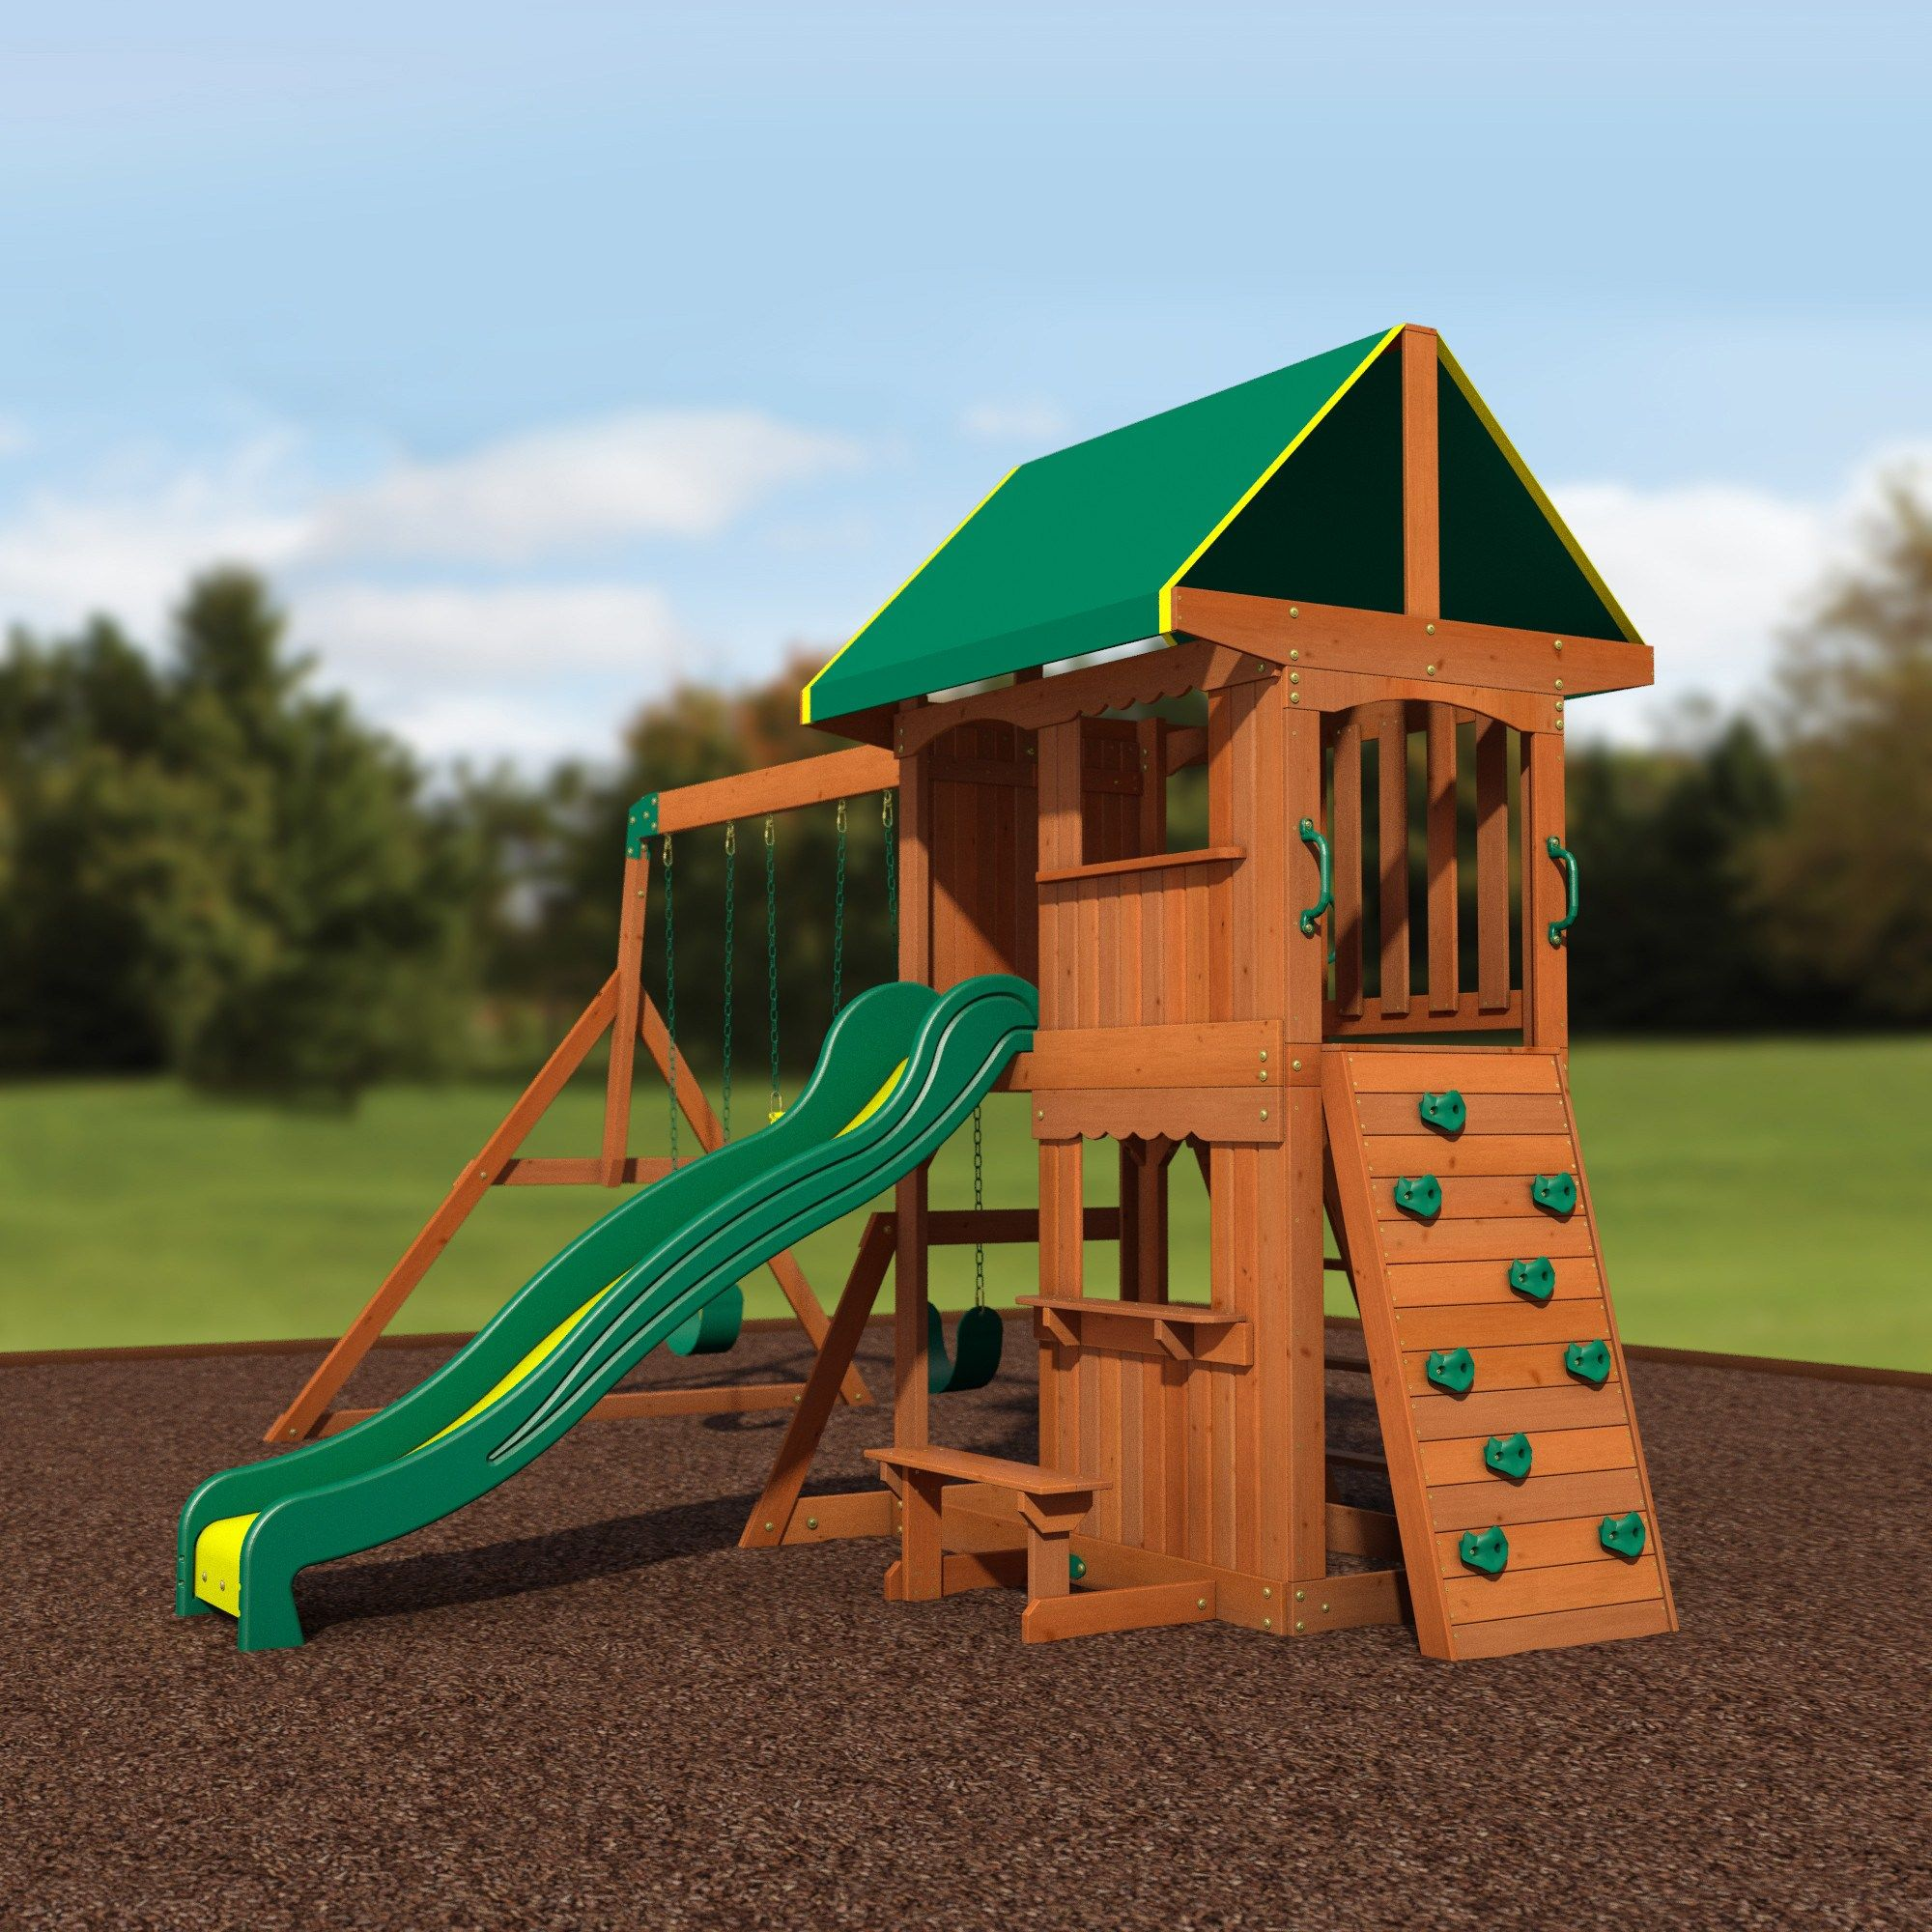 Somerset Wooden Swing Set (With images) | Wooden swing set ...